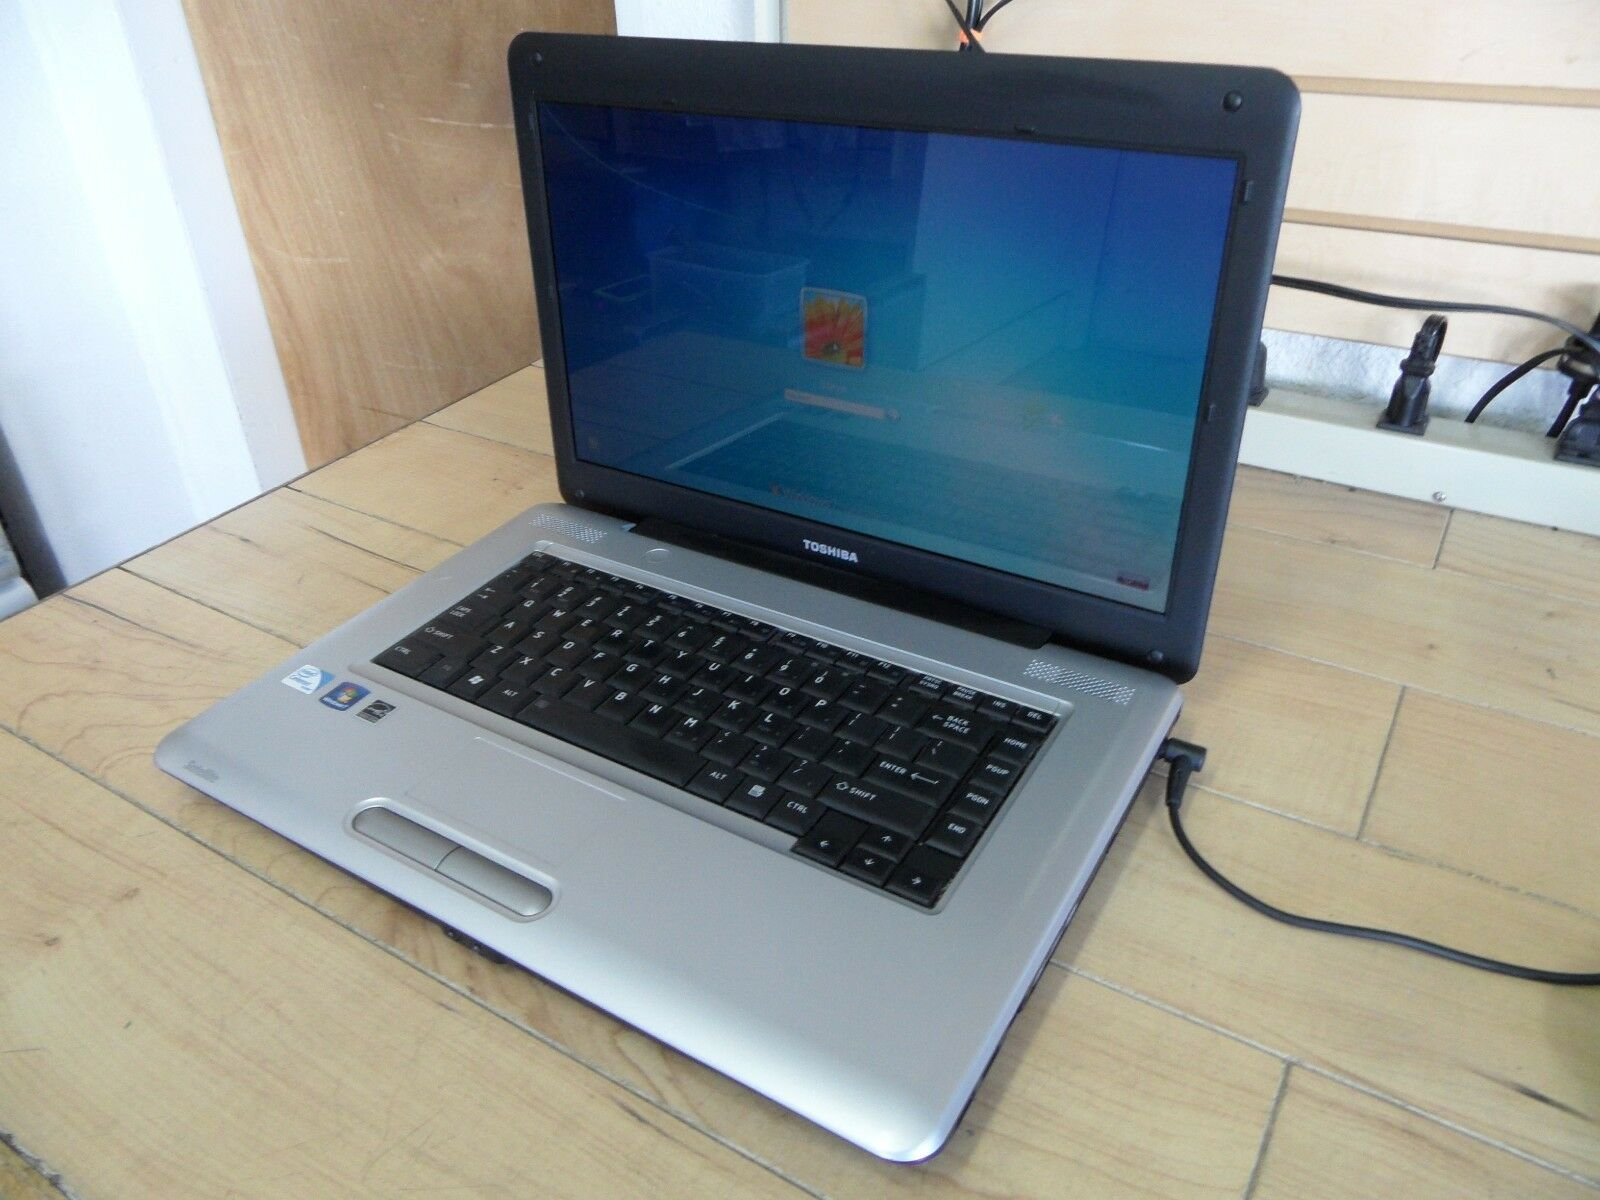 Toshiba Satellite L455 L455-S59 Laptop 4 Parts Booted Windows Hard Drive Wiped *